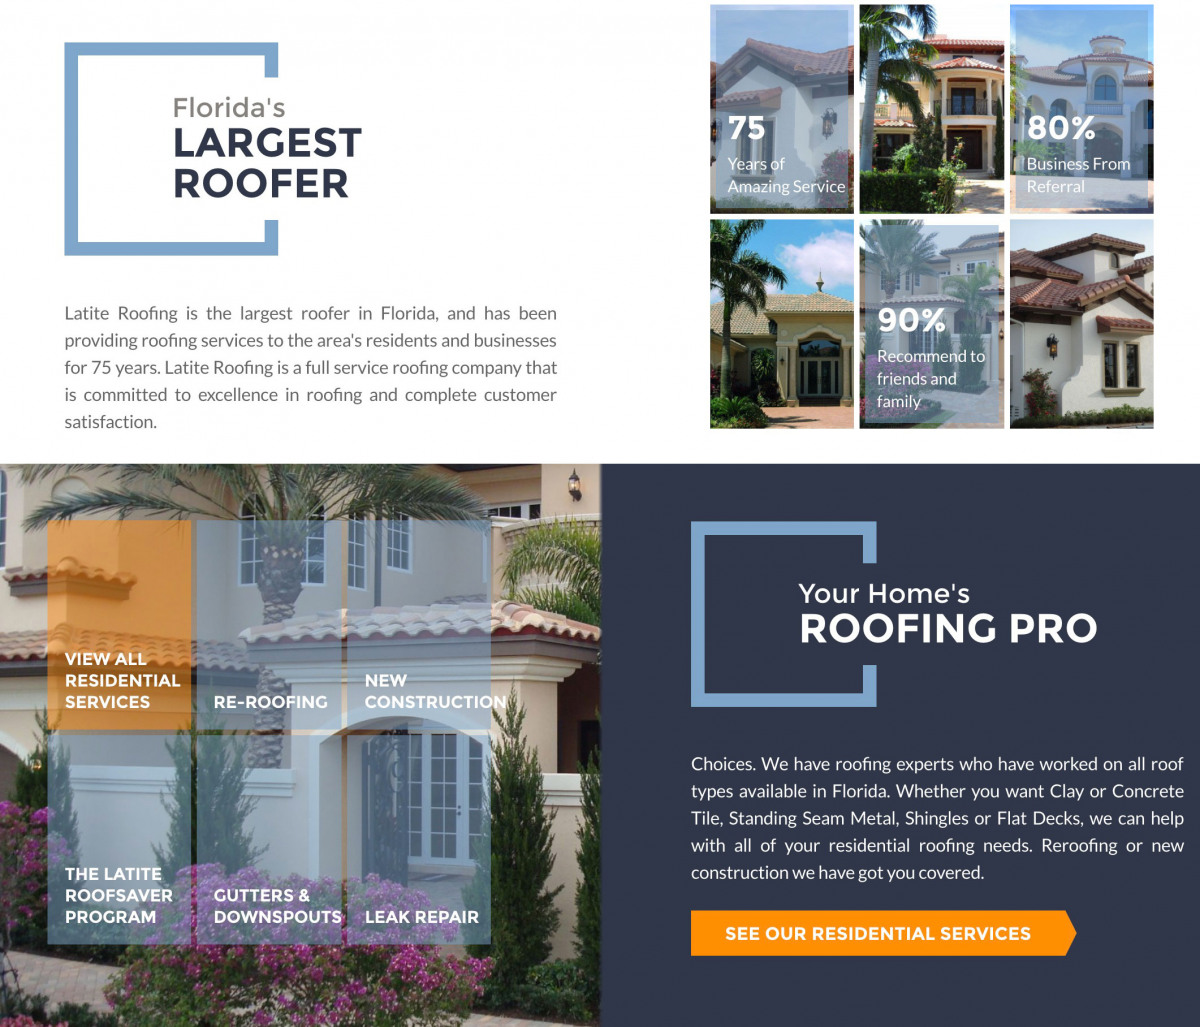 Image of website for Latite Roofing